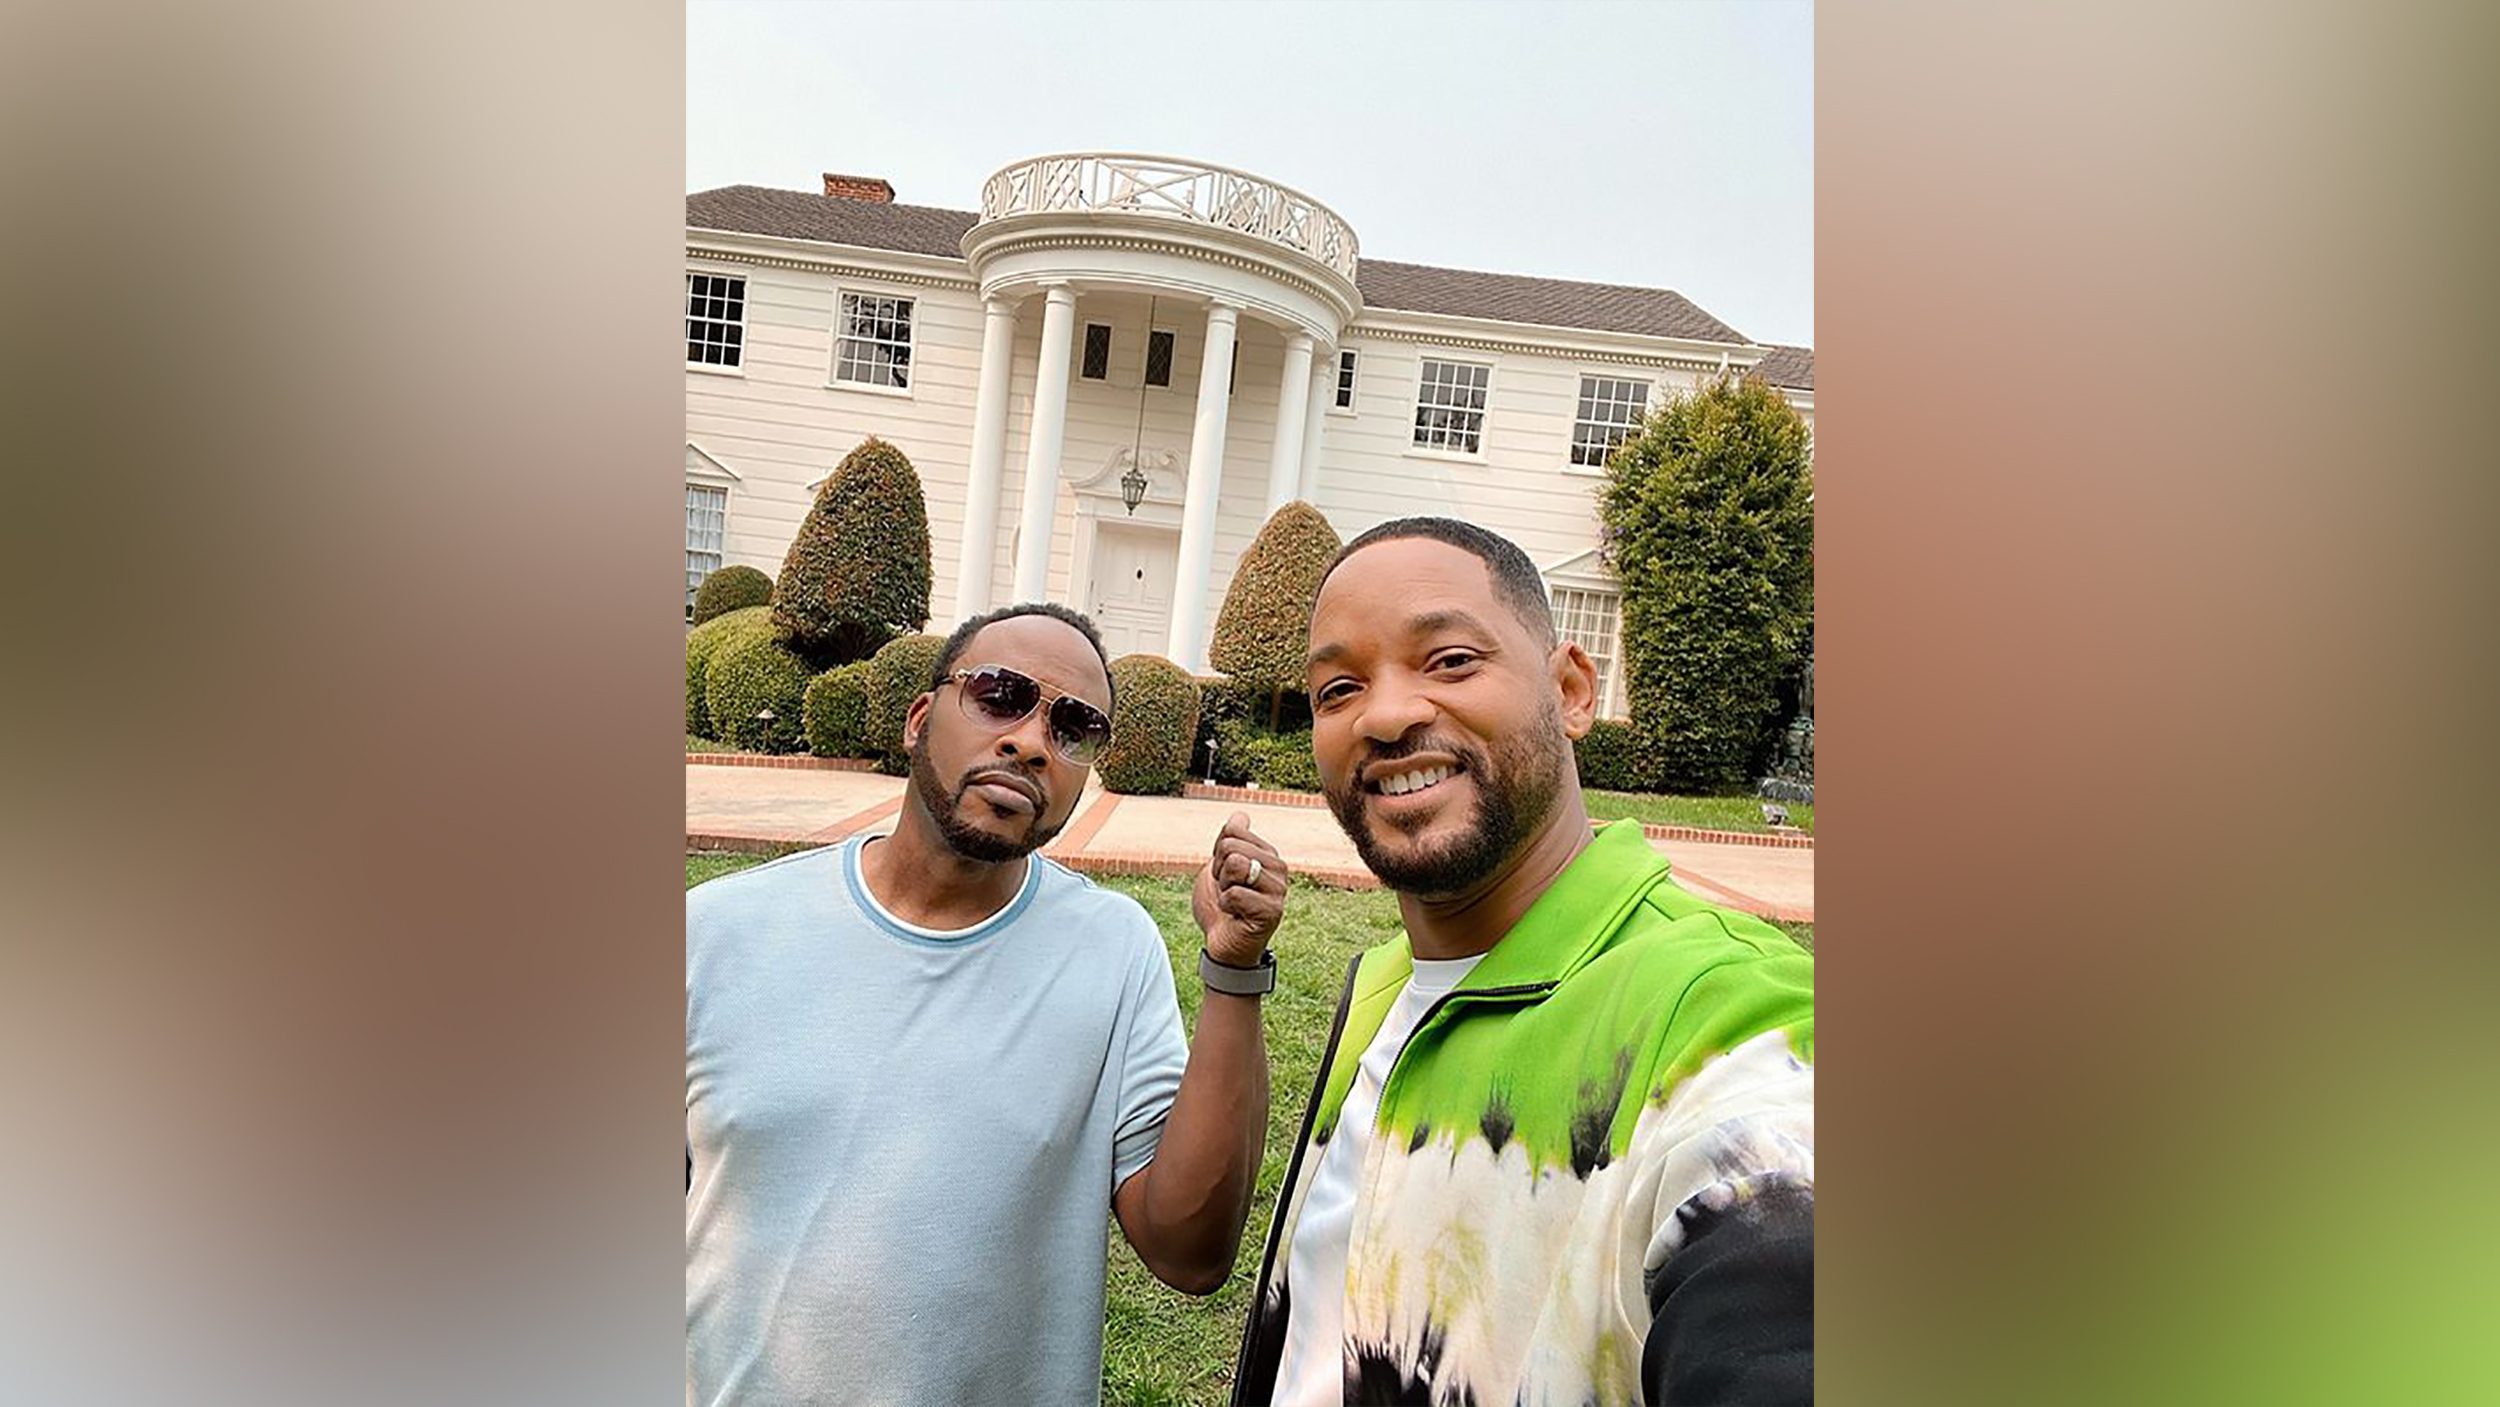 The 'Fresh Prince of Bel-Air' mansion is on Airbnb | CNN Travel